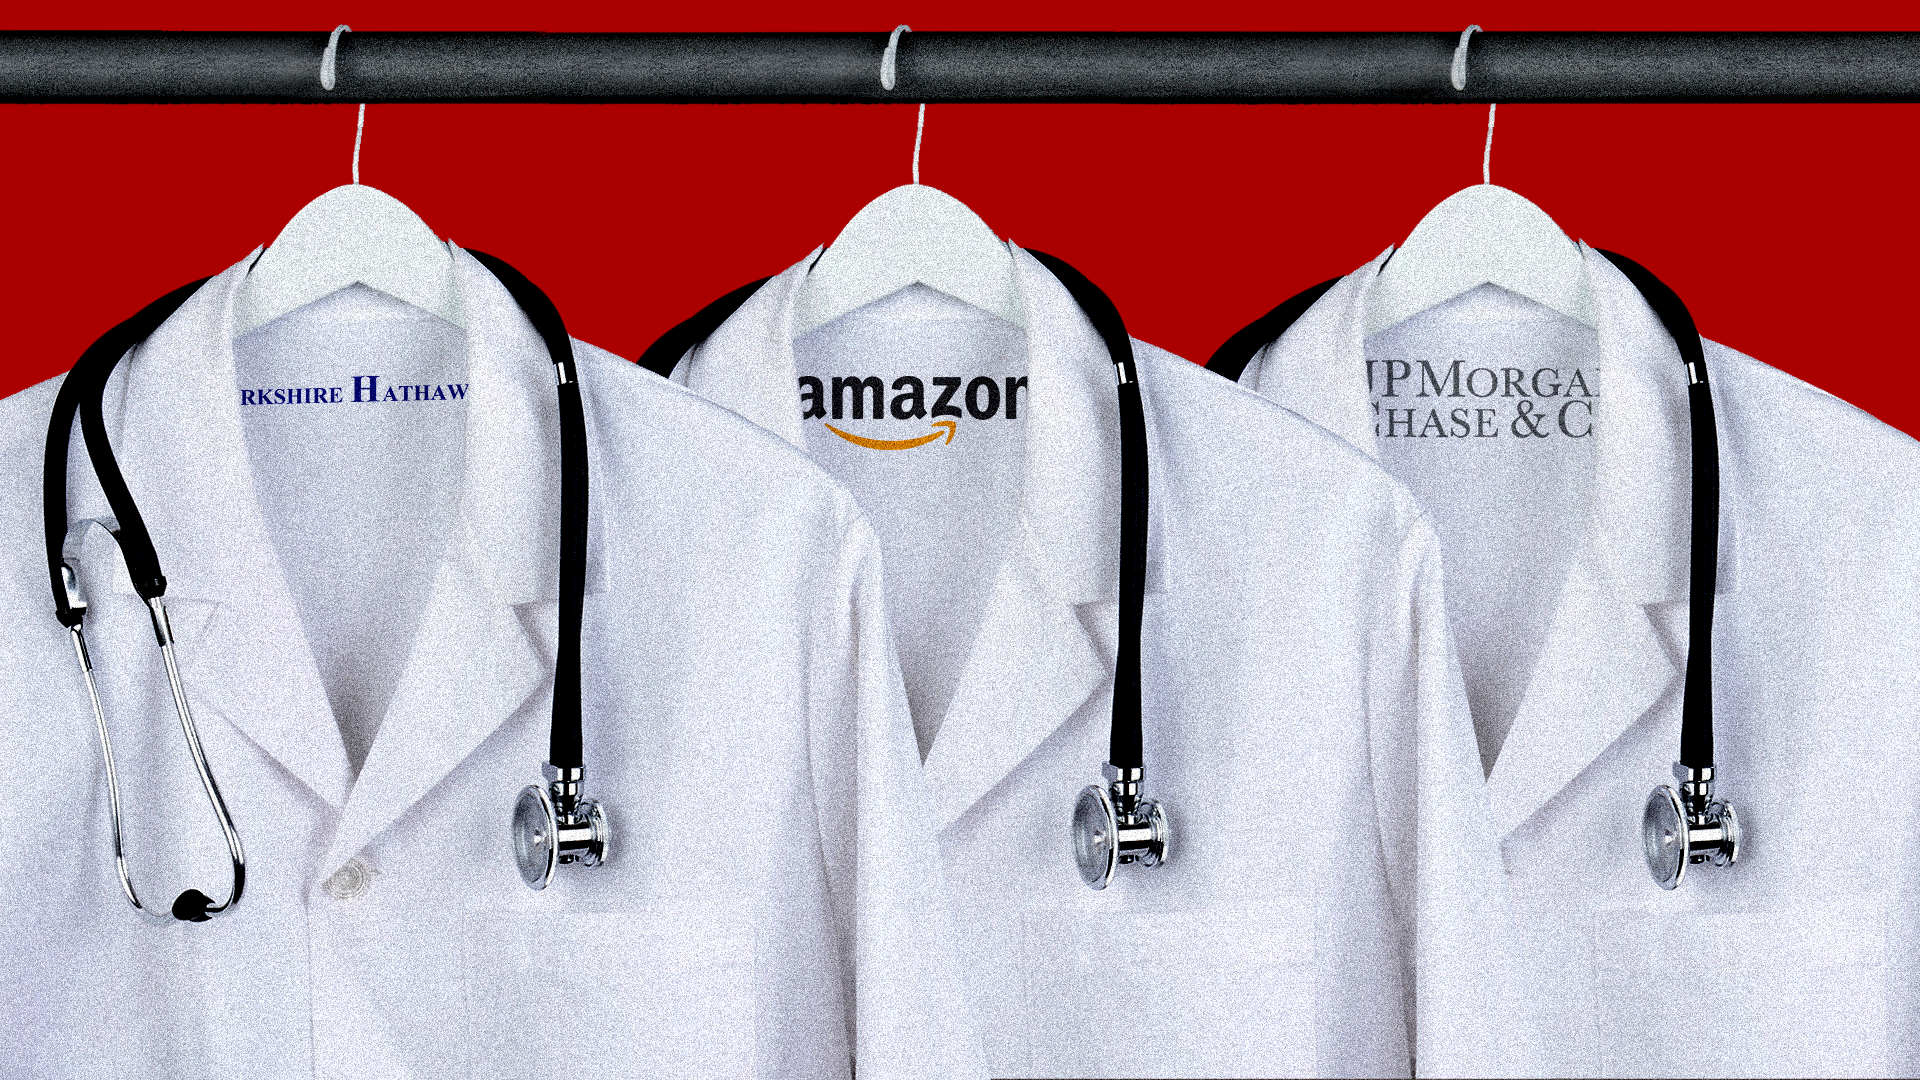 Doctors' coats with Amazon, Berkshire Hathaway and JP Morgan Chase logos